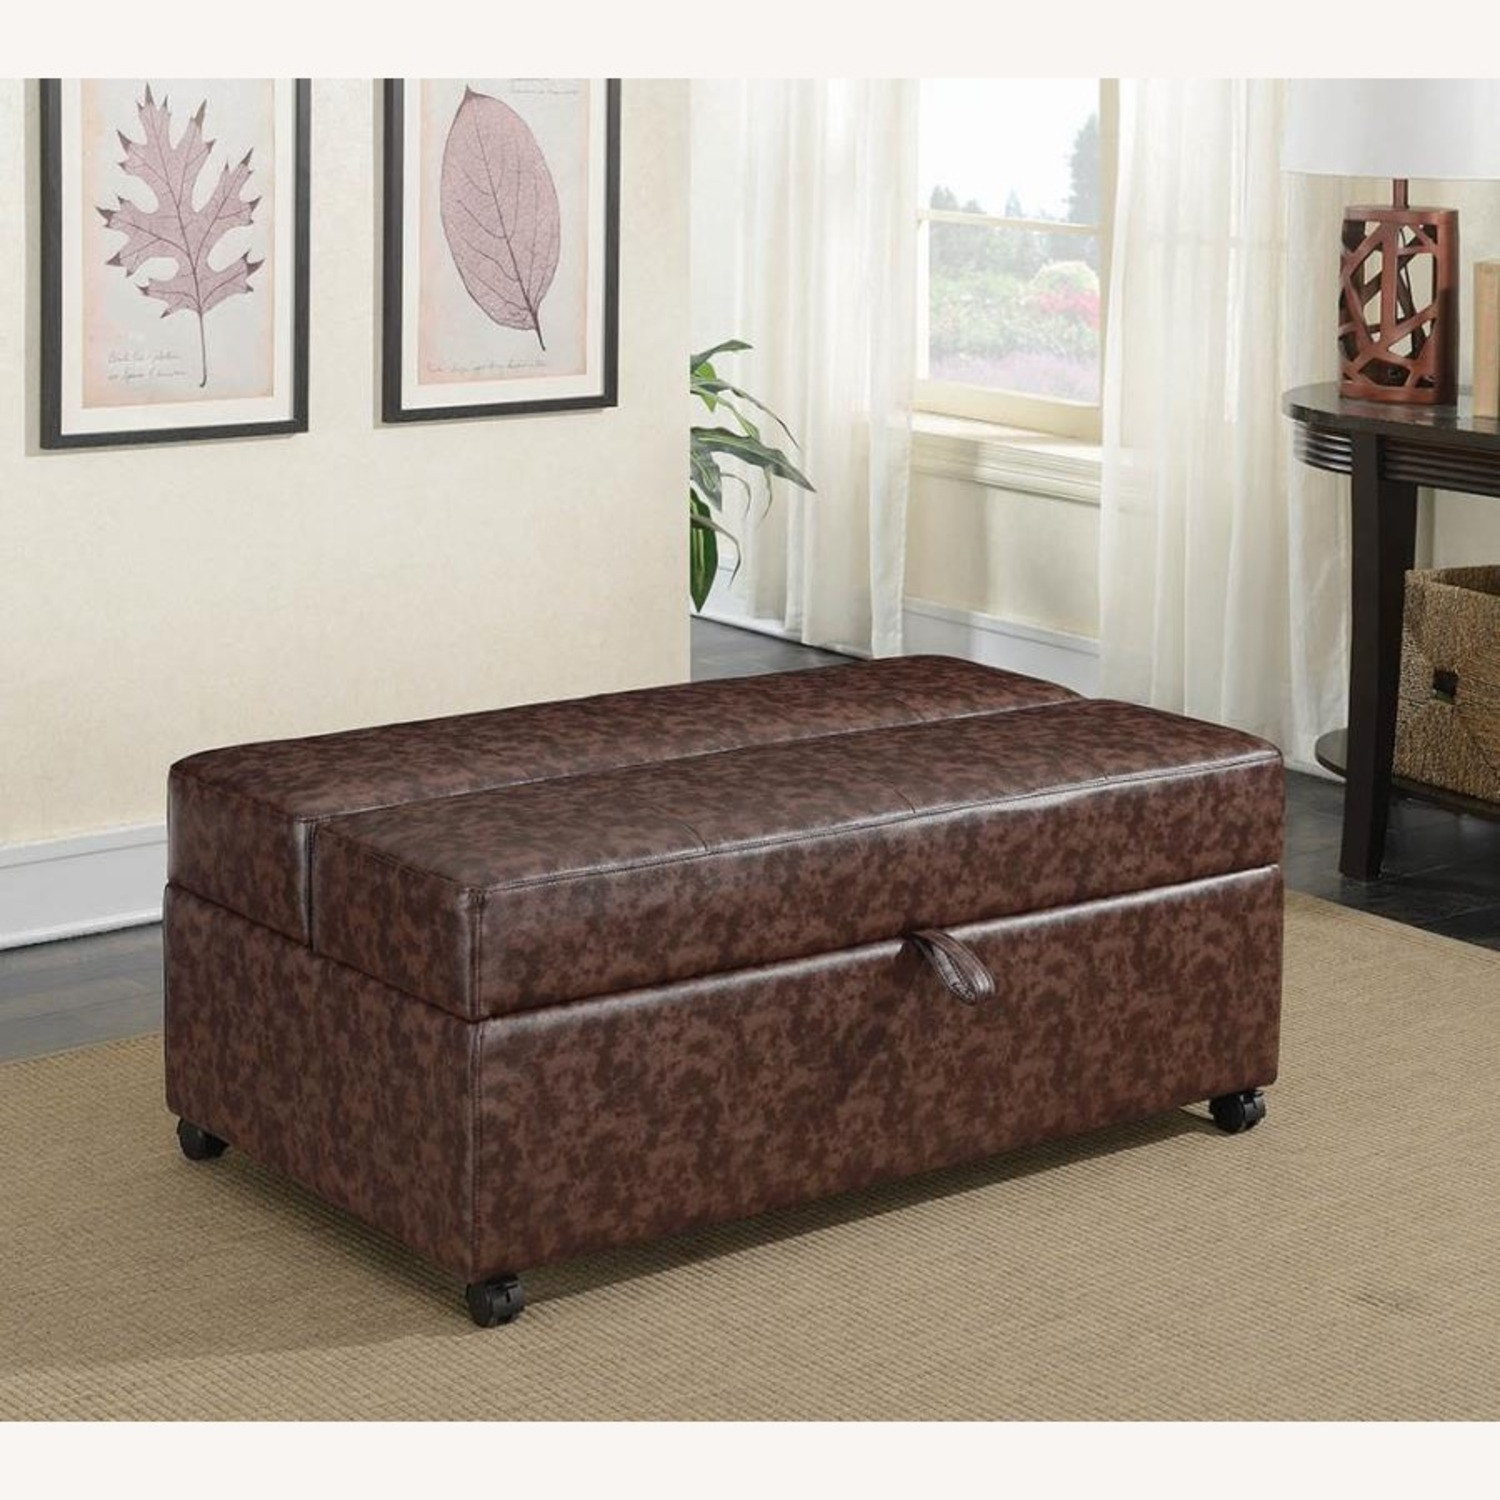 Multi-Functional Ottoman In Dark Brown Leatherette - image-4